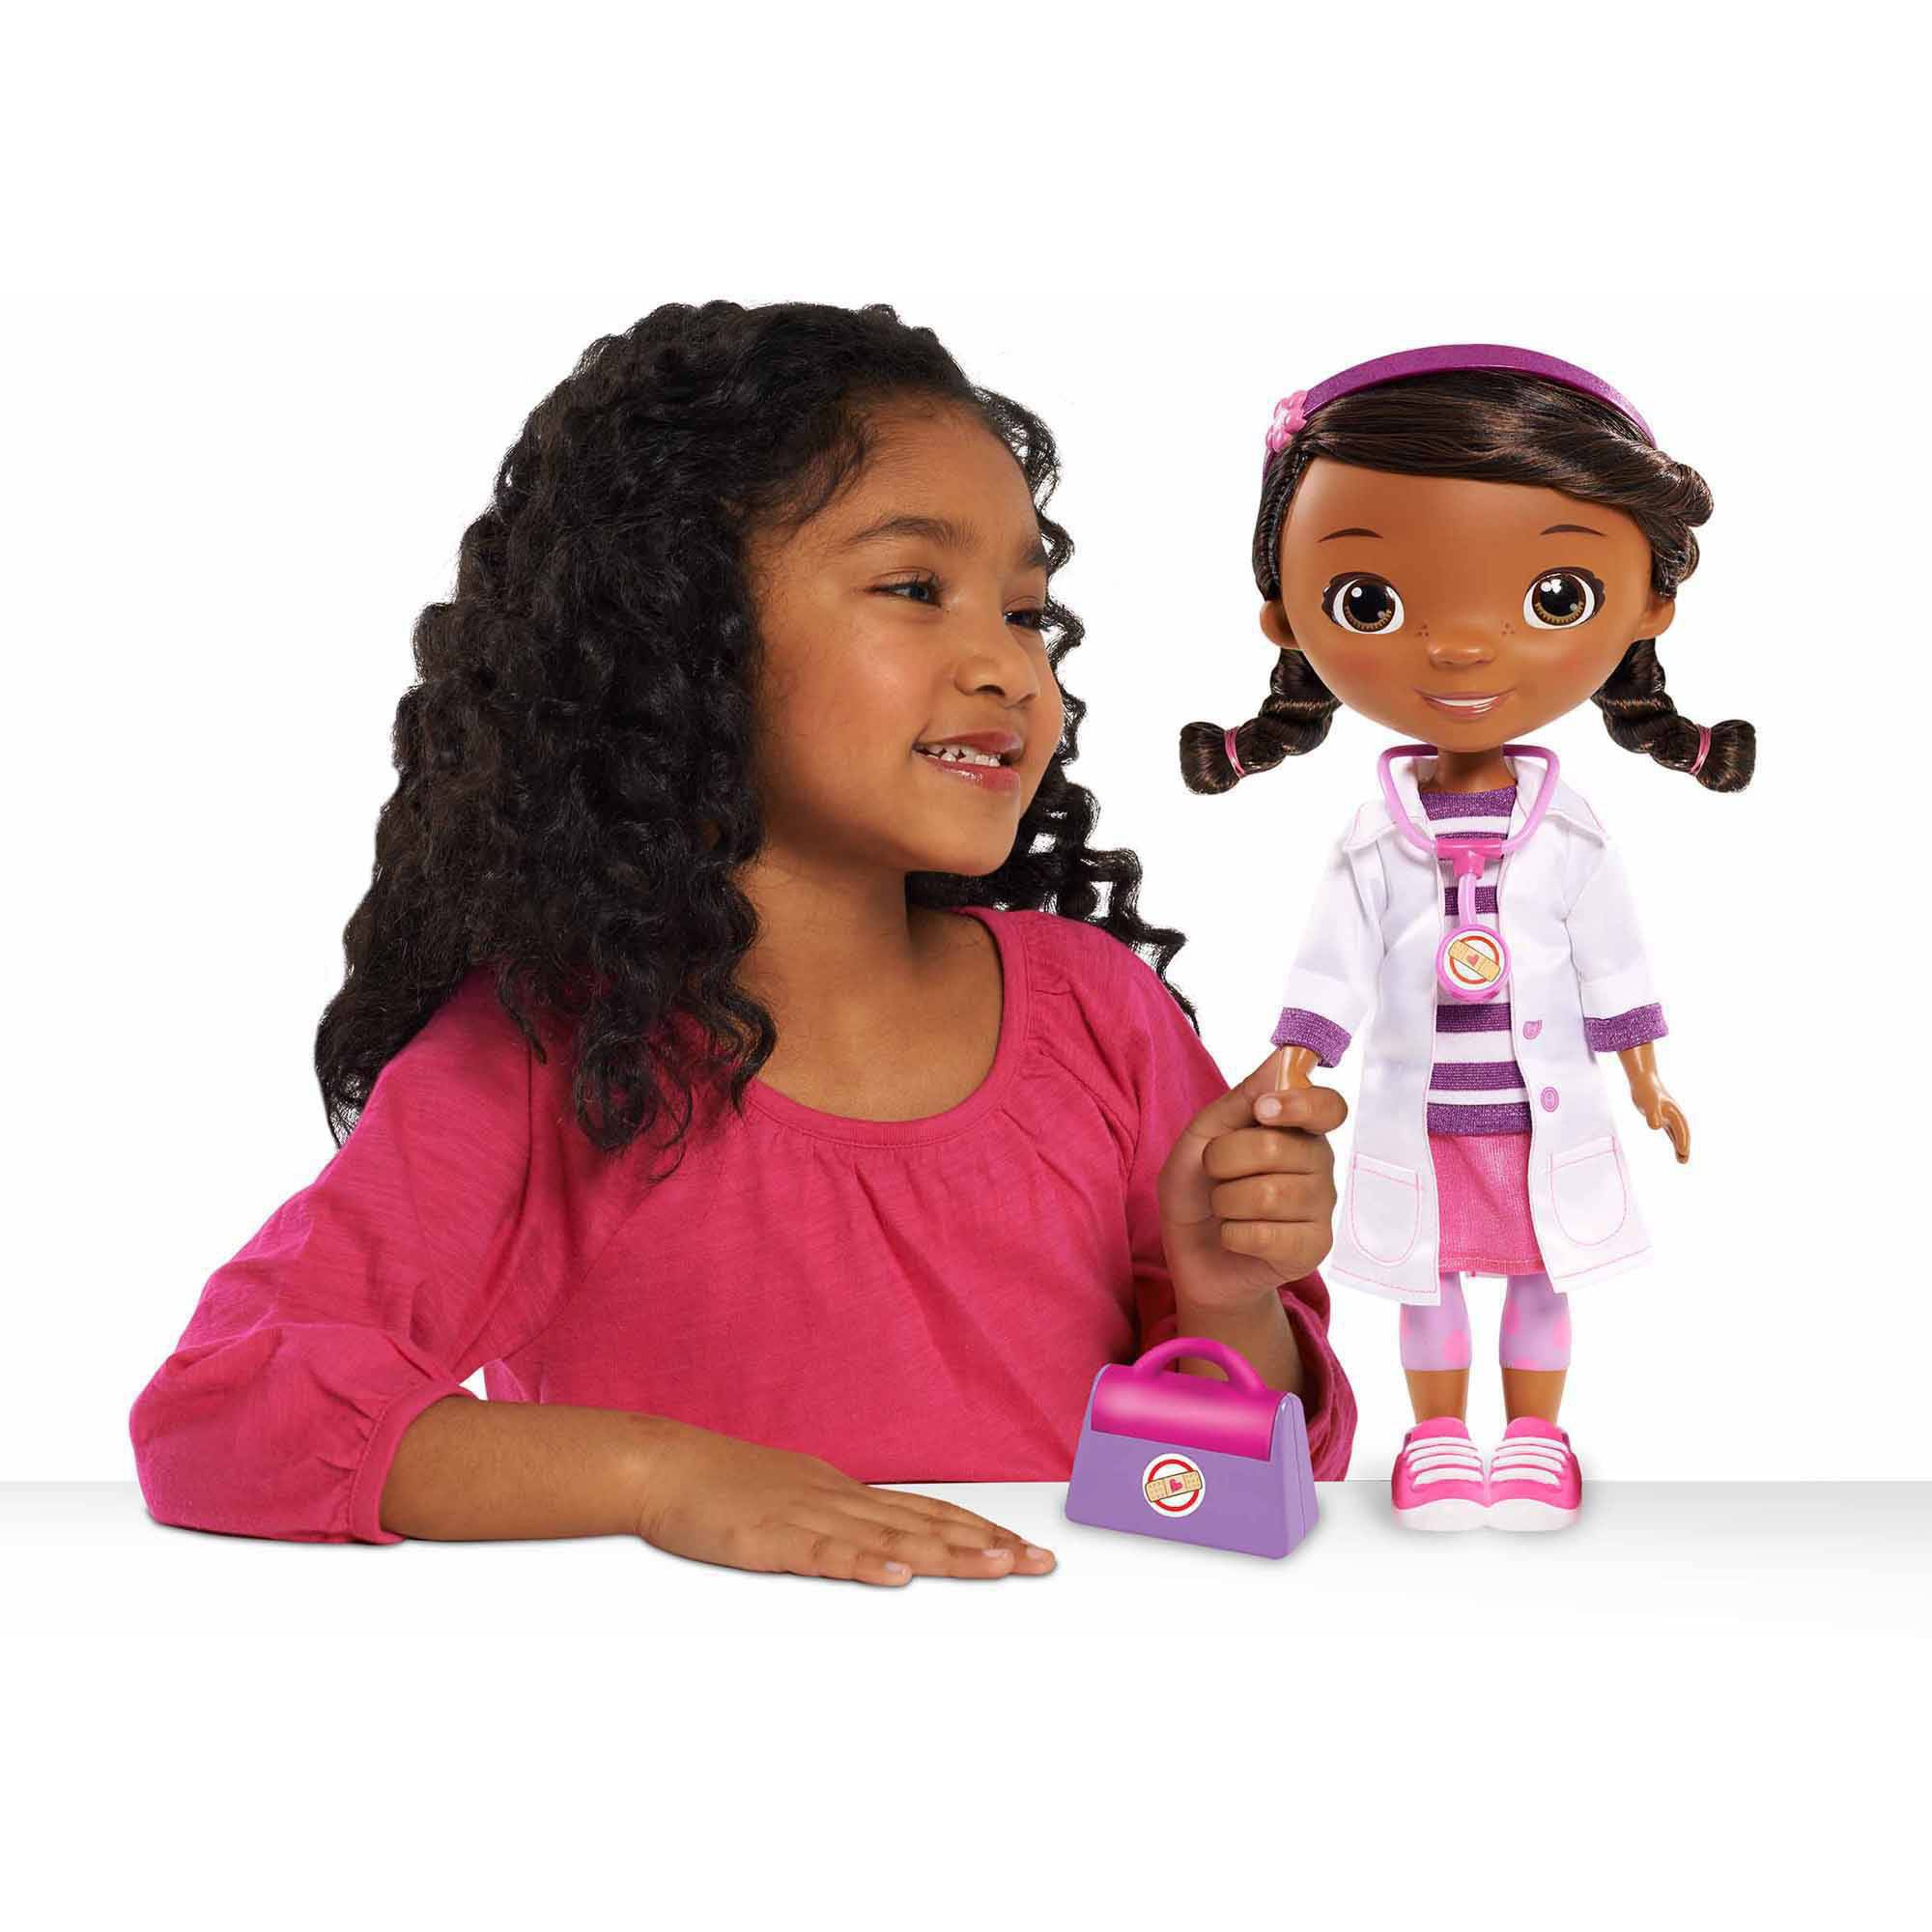 Doc McStuffins My Friend Doc Doll